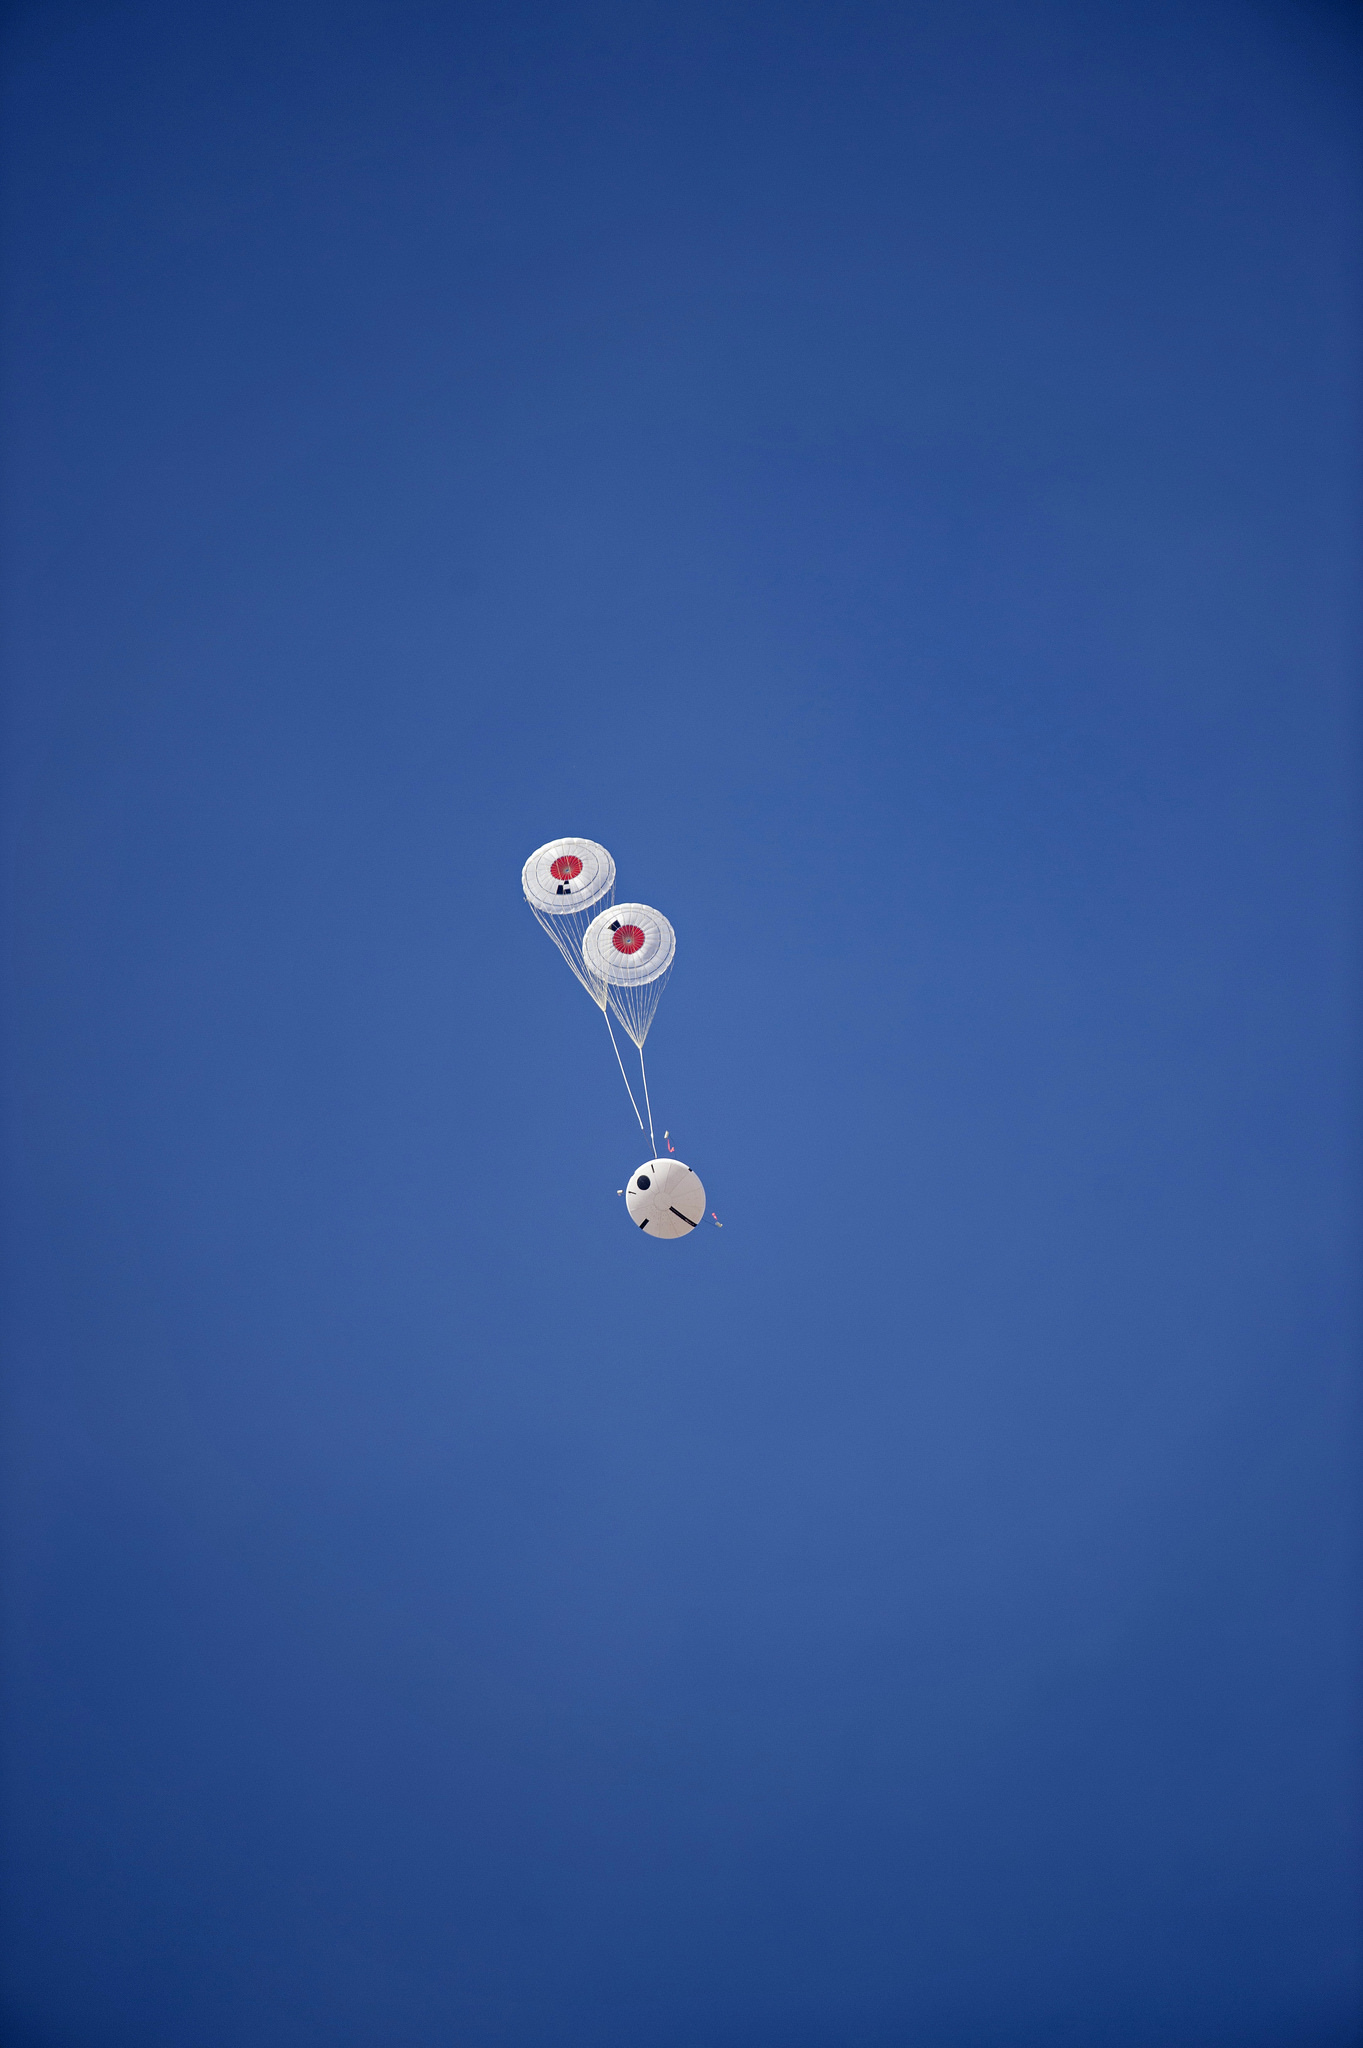 nasa orion spacecraft 2017 - photo #28